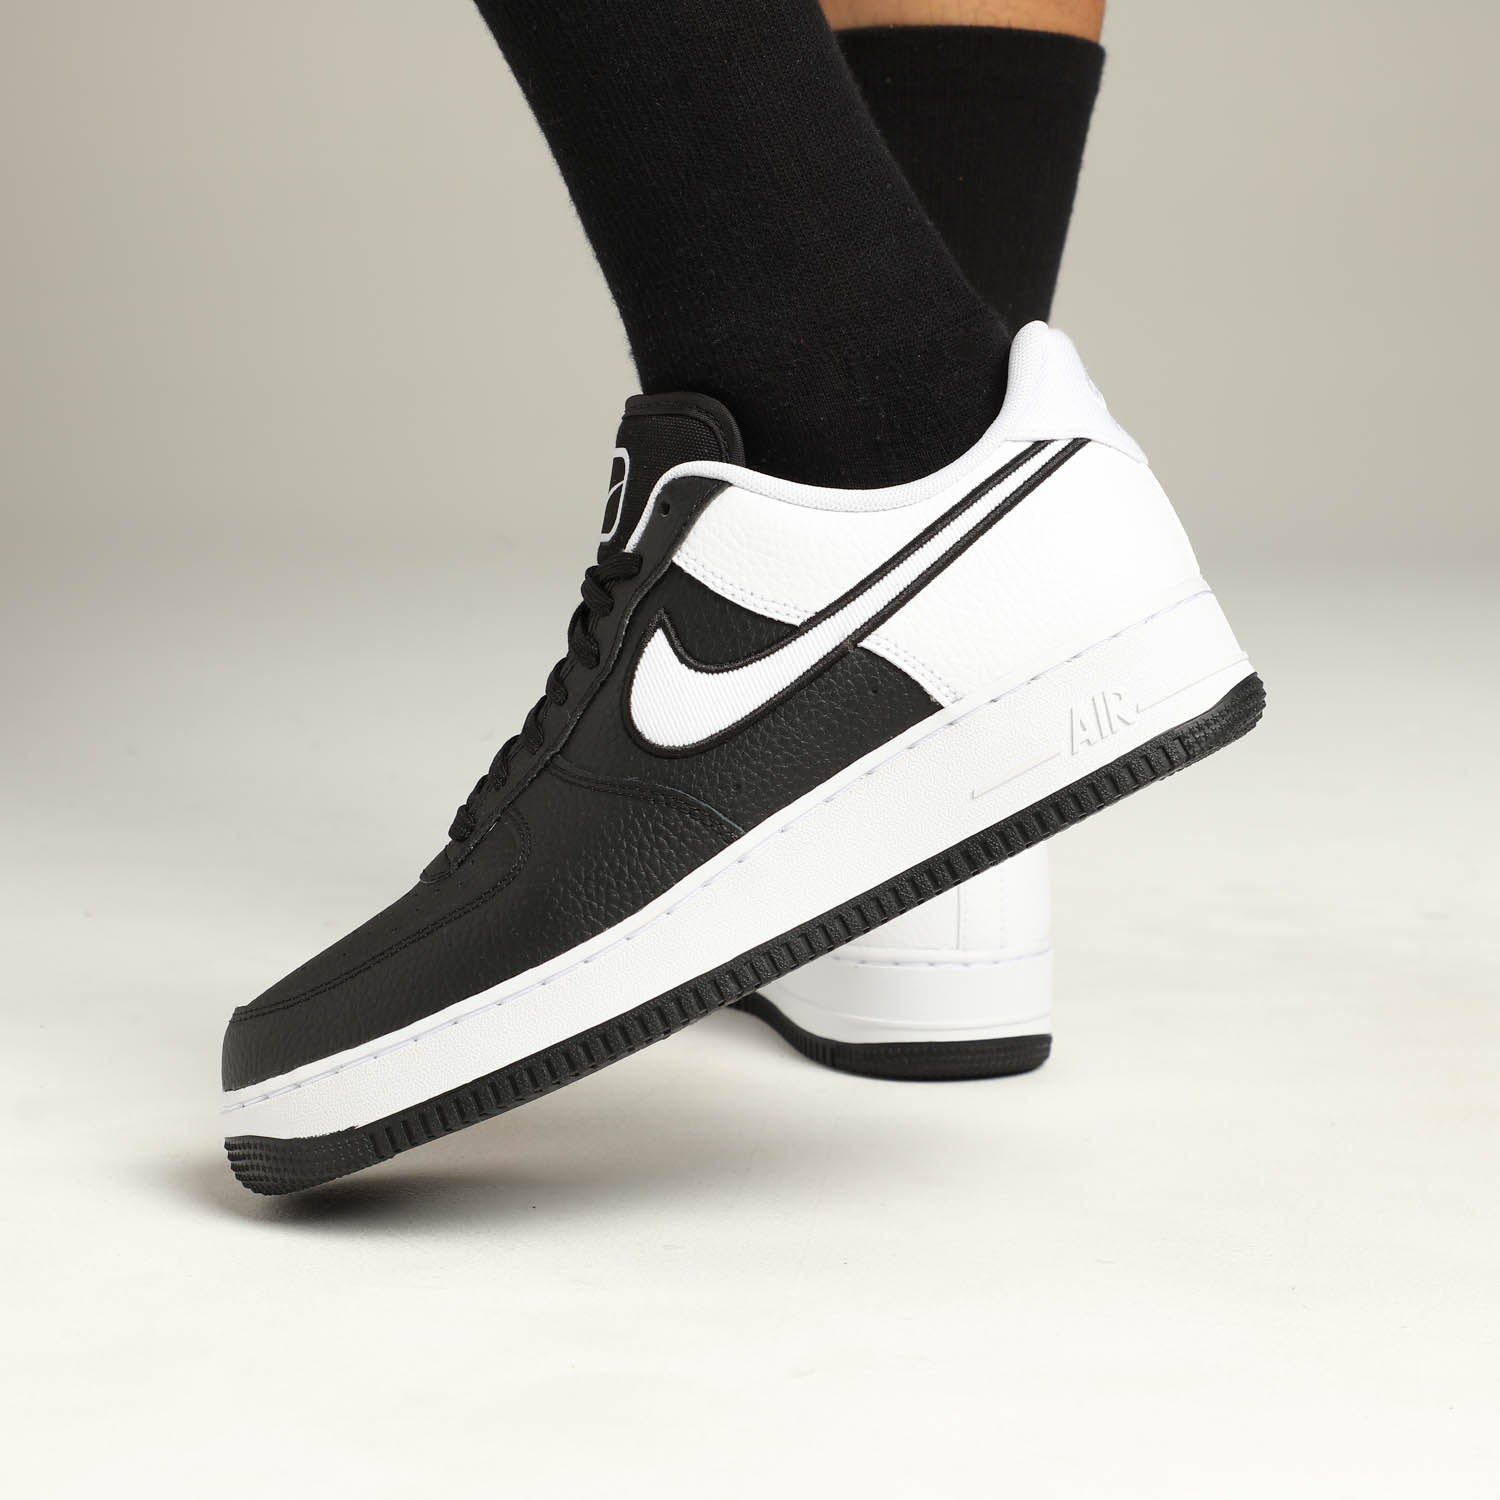 AUTHENTIC NIKE AIR FORCE 1 `07 LV8 Low Black White Grey AO2439 002 Men size   eBay